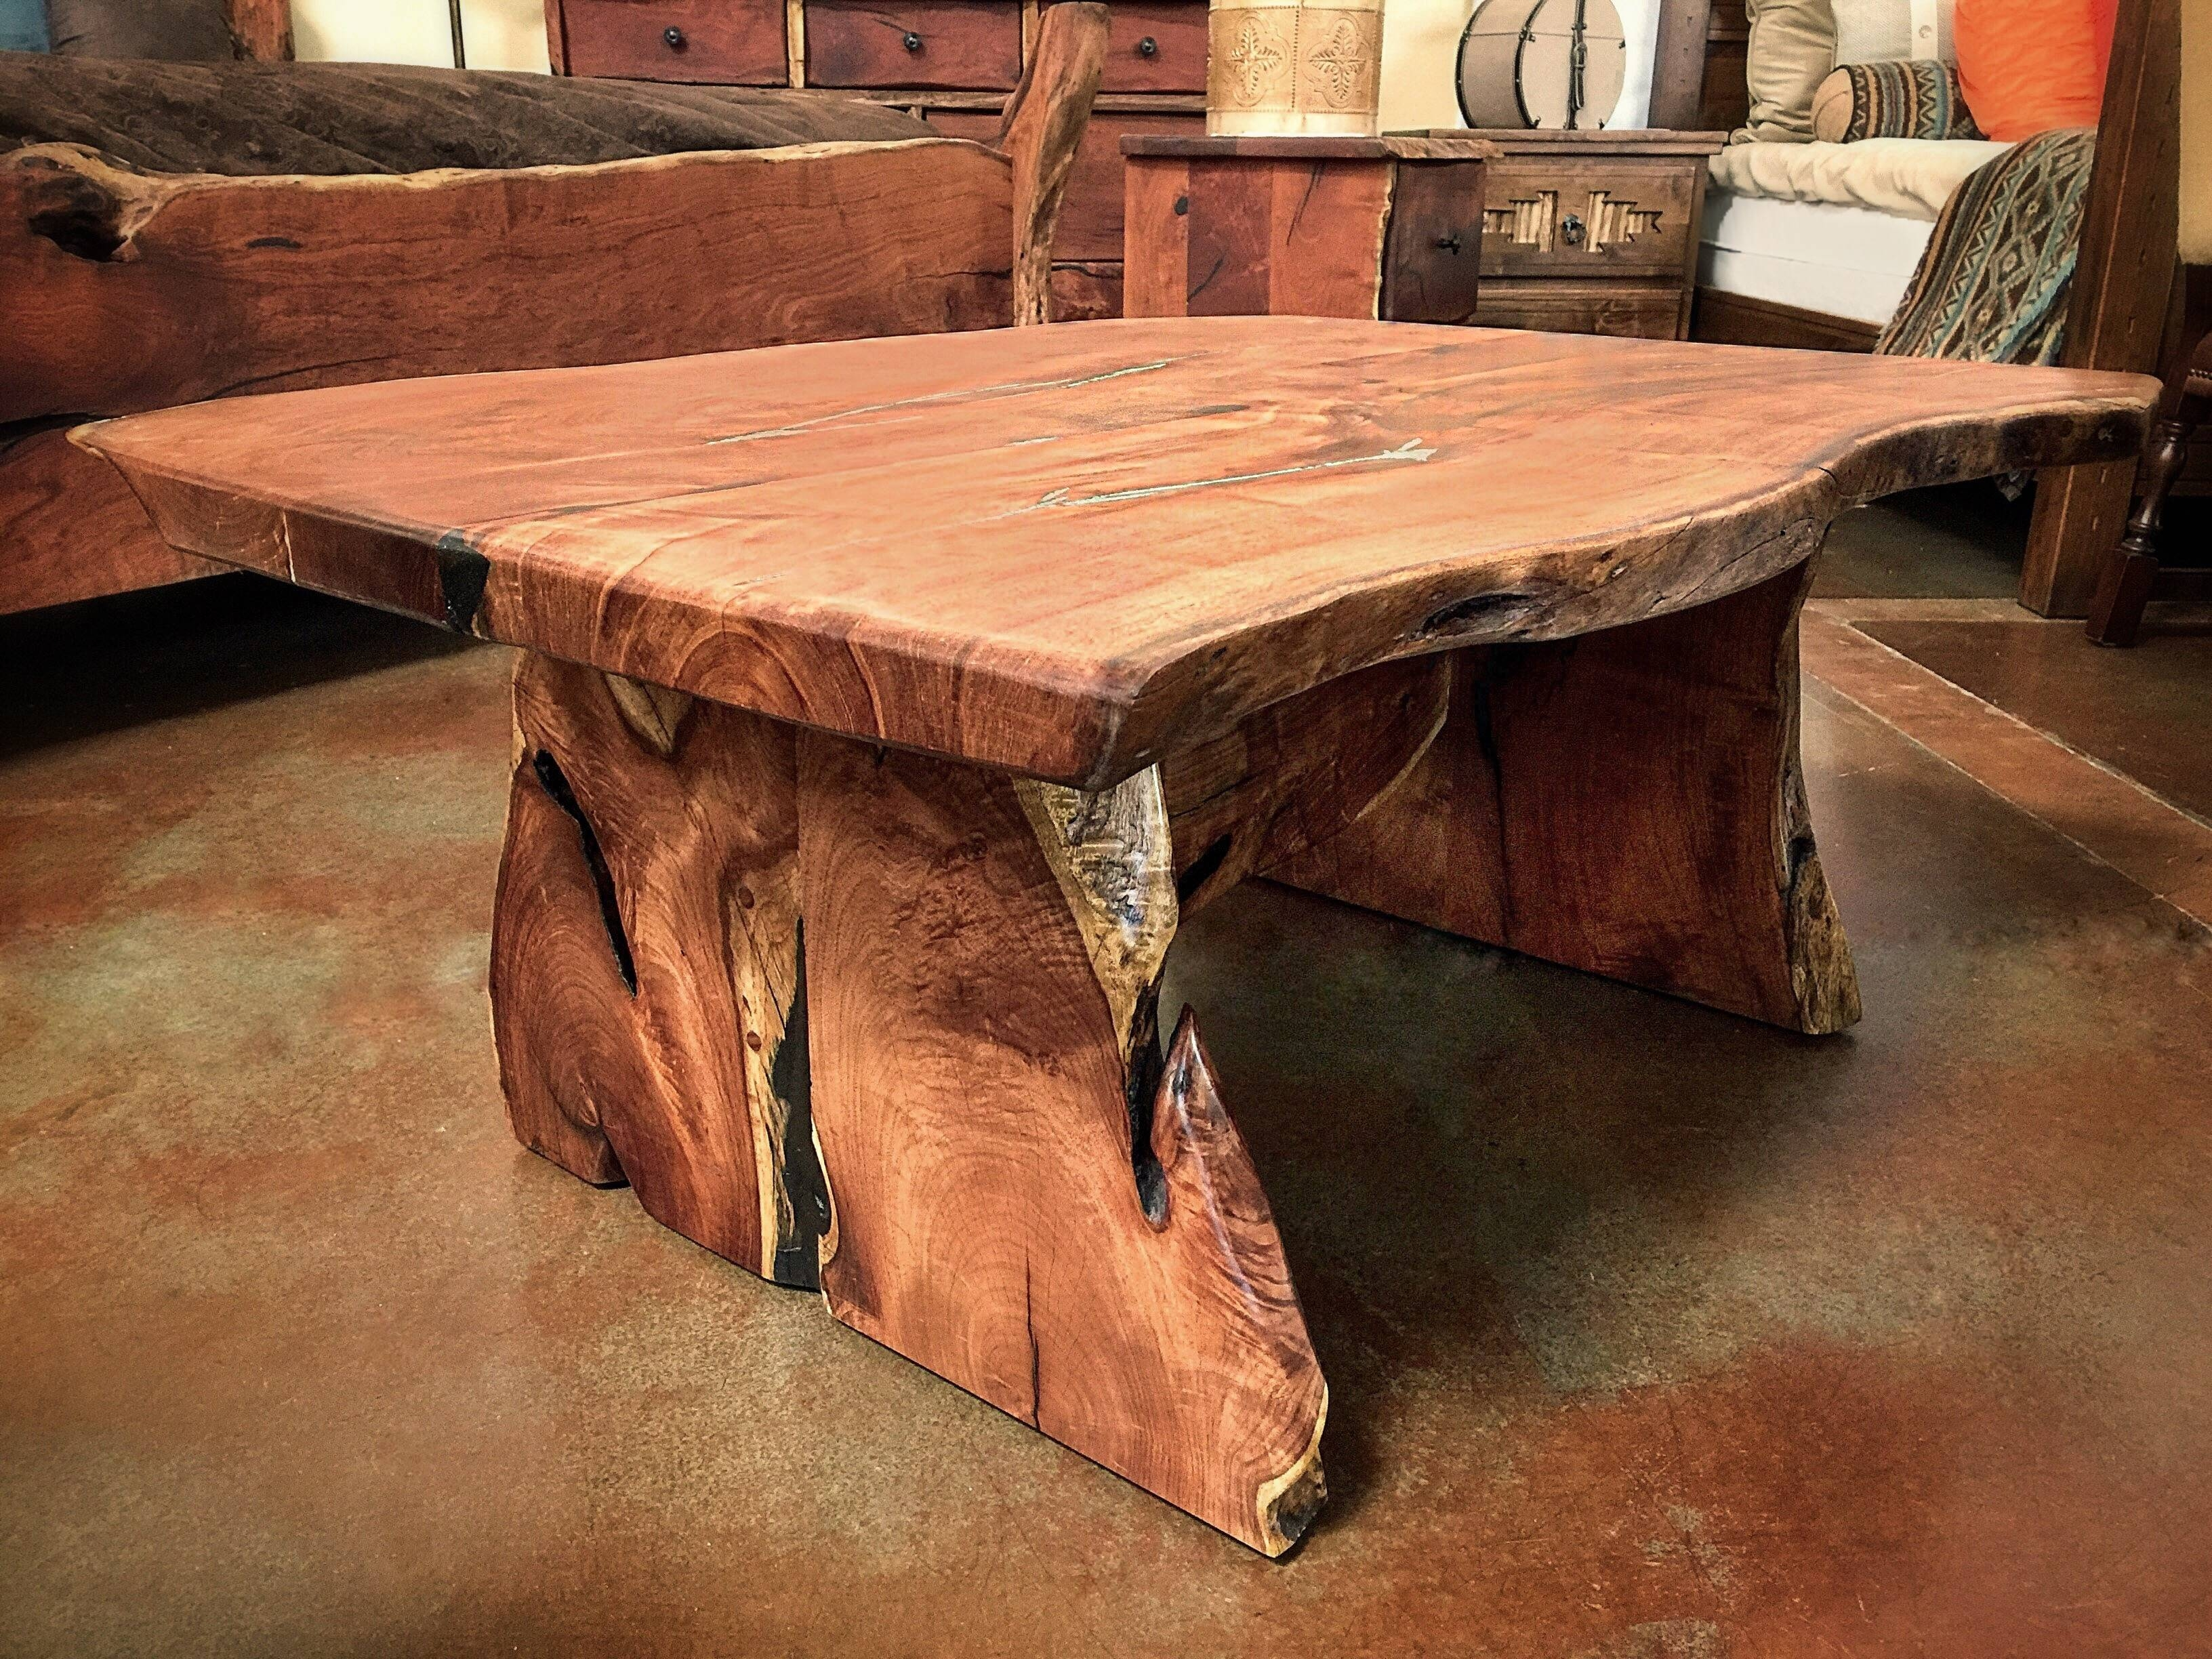 Coffee Tables Tempe | Mexican Style Coffee Tables intended for Rustic Style Coffee Tables (Image 8 of 30)